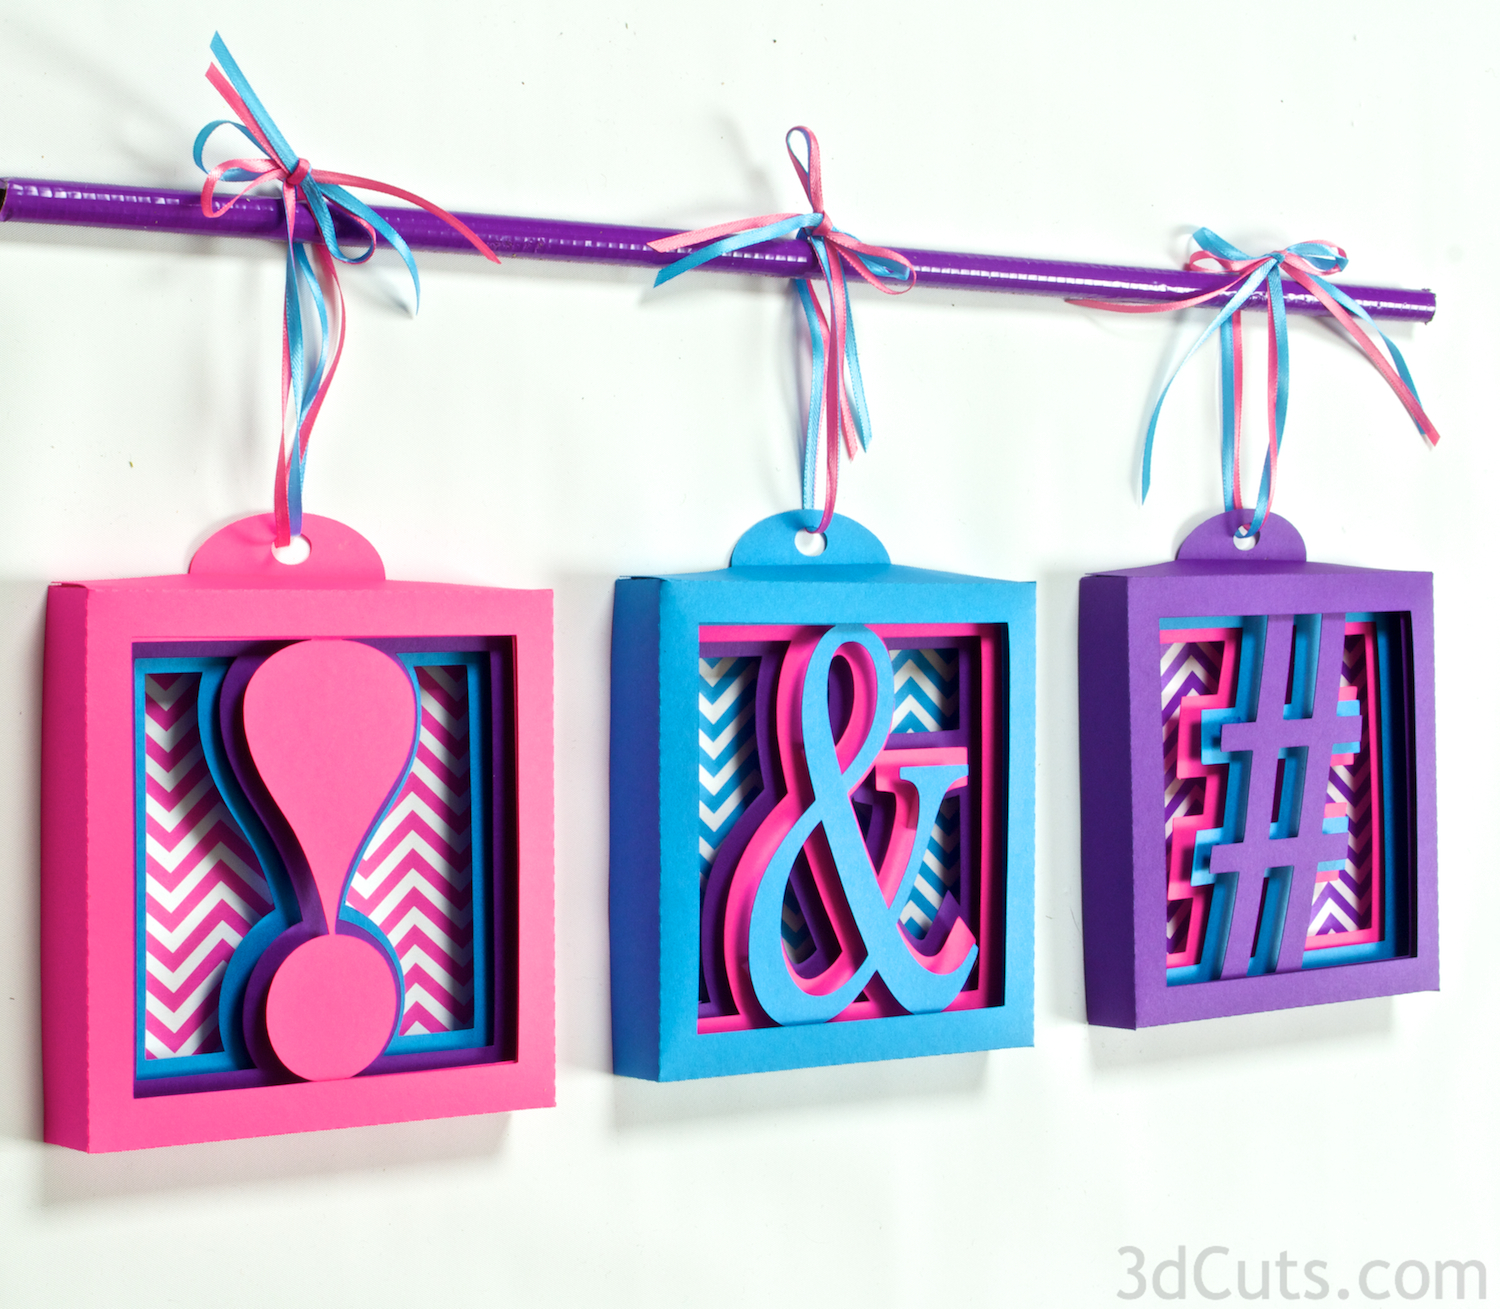 Alphabet Shadow Boxes by 3DCuts.com, Marji Roy, 3D cutting files in .svg, .dxf, and .pdf formats for use with Silhouette and Cricut cutting machines, paper crafting files